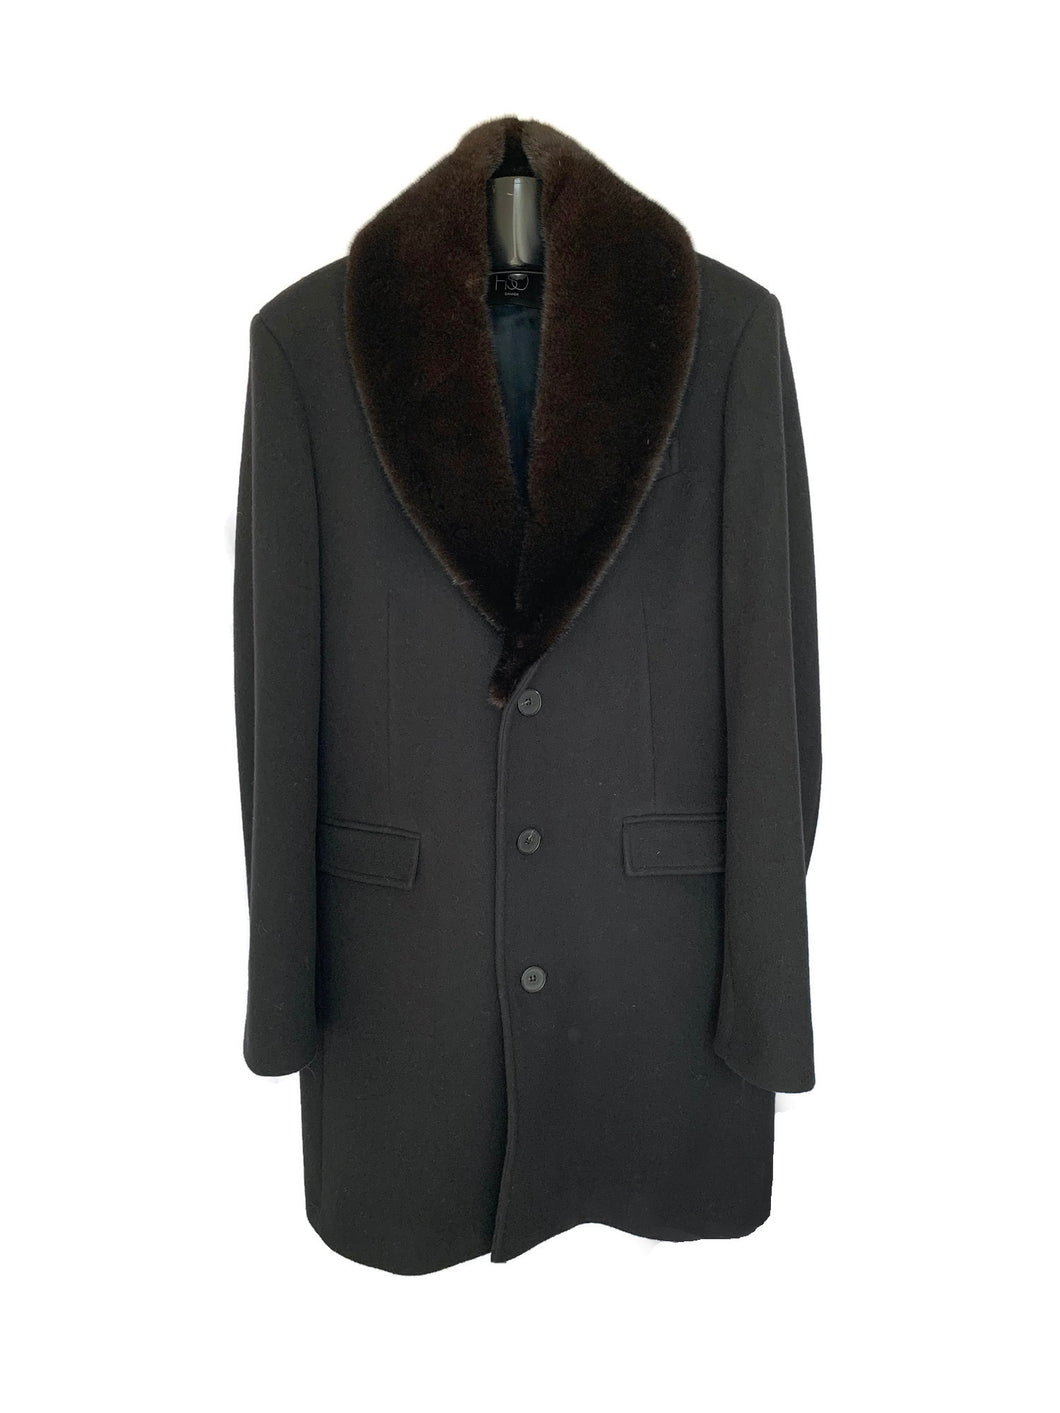 Men's Black Cashmere / Wool Coat W/ Detachable Mink Collar